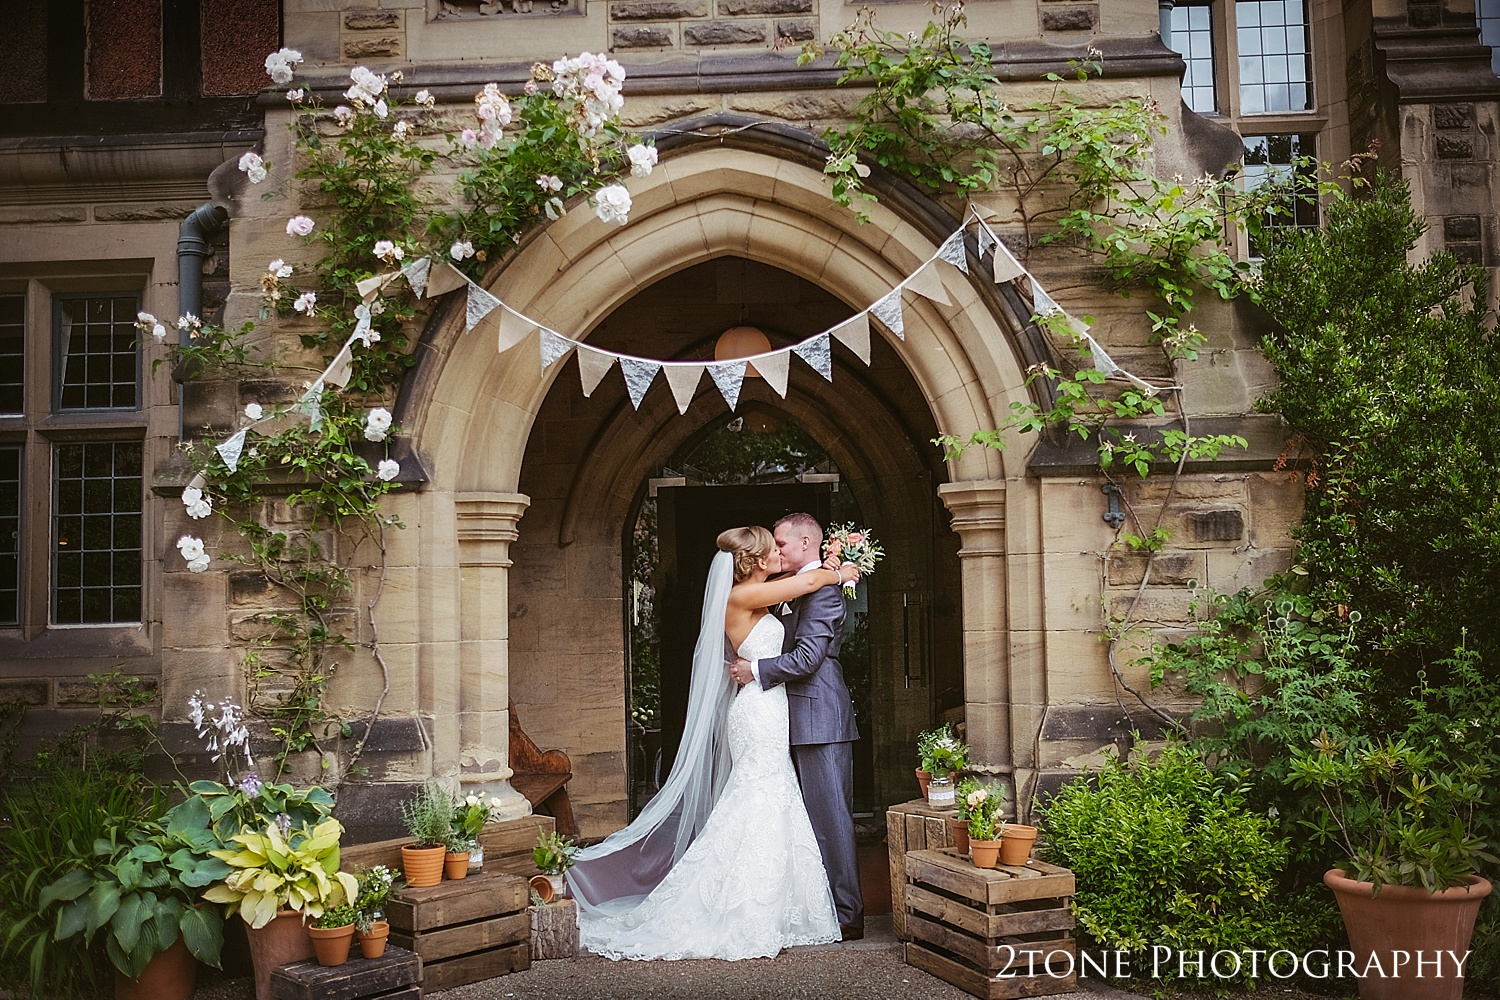 Wedding couple at Jesmond Dene House in Newcastle by 2tone Photography www.2tonephotography.co.uk